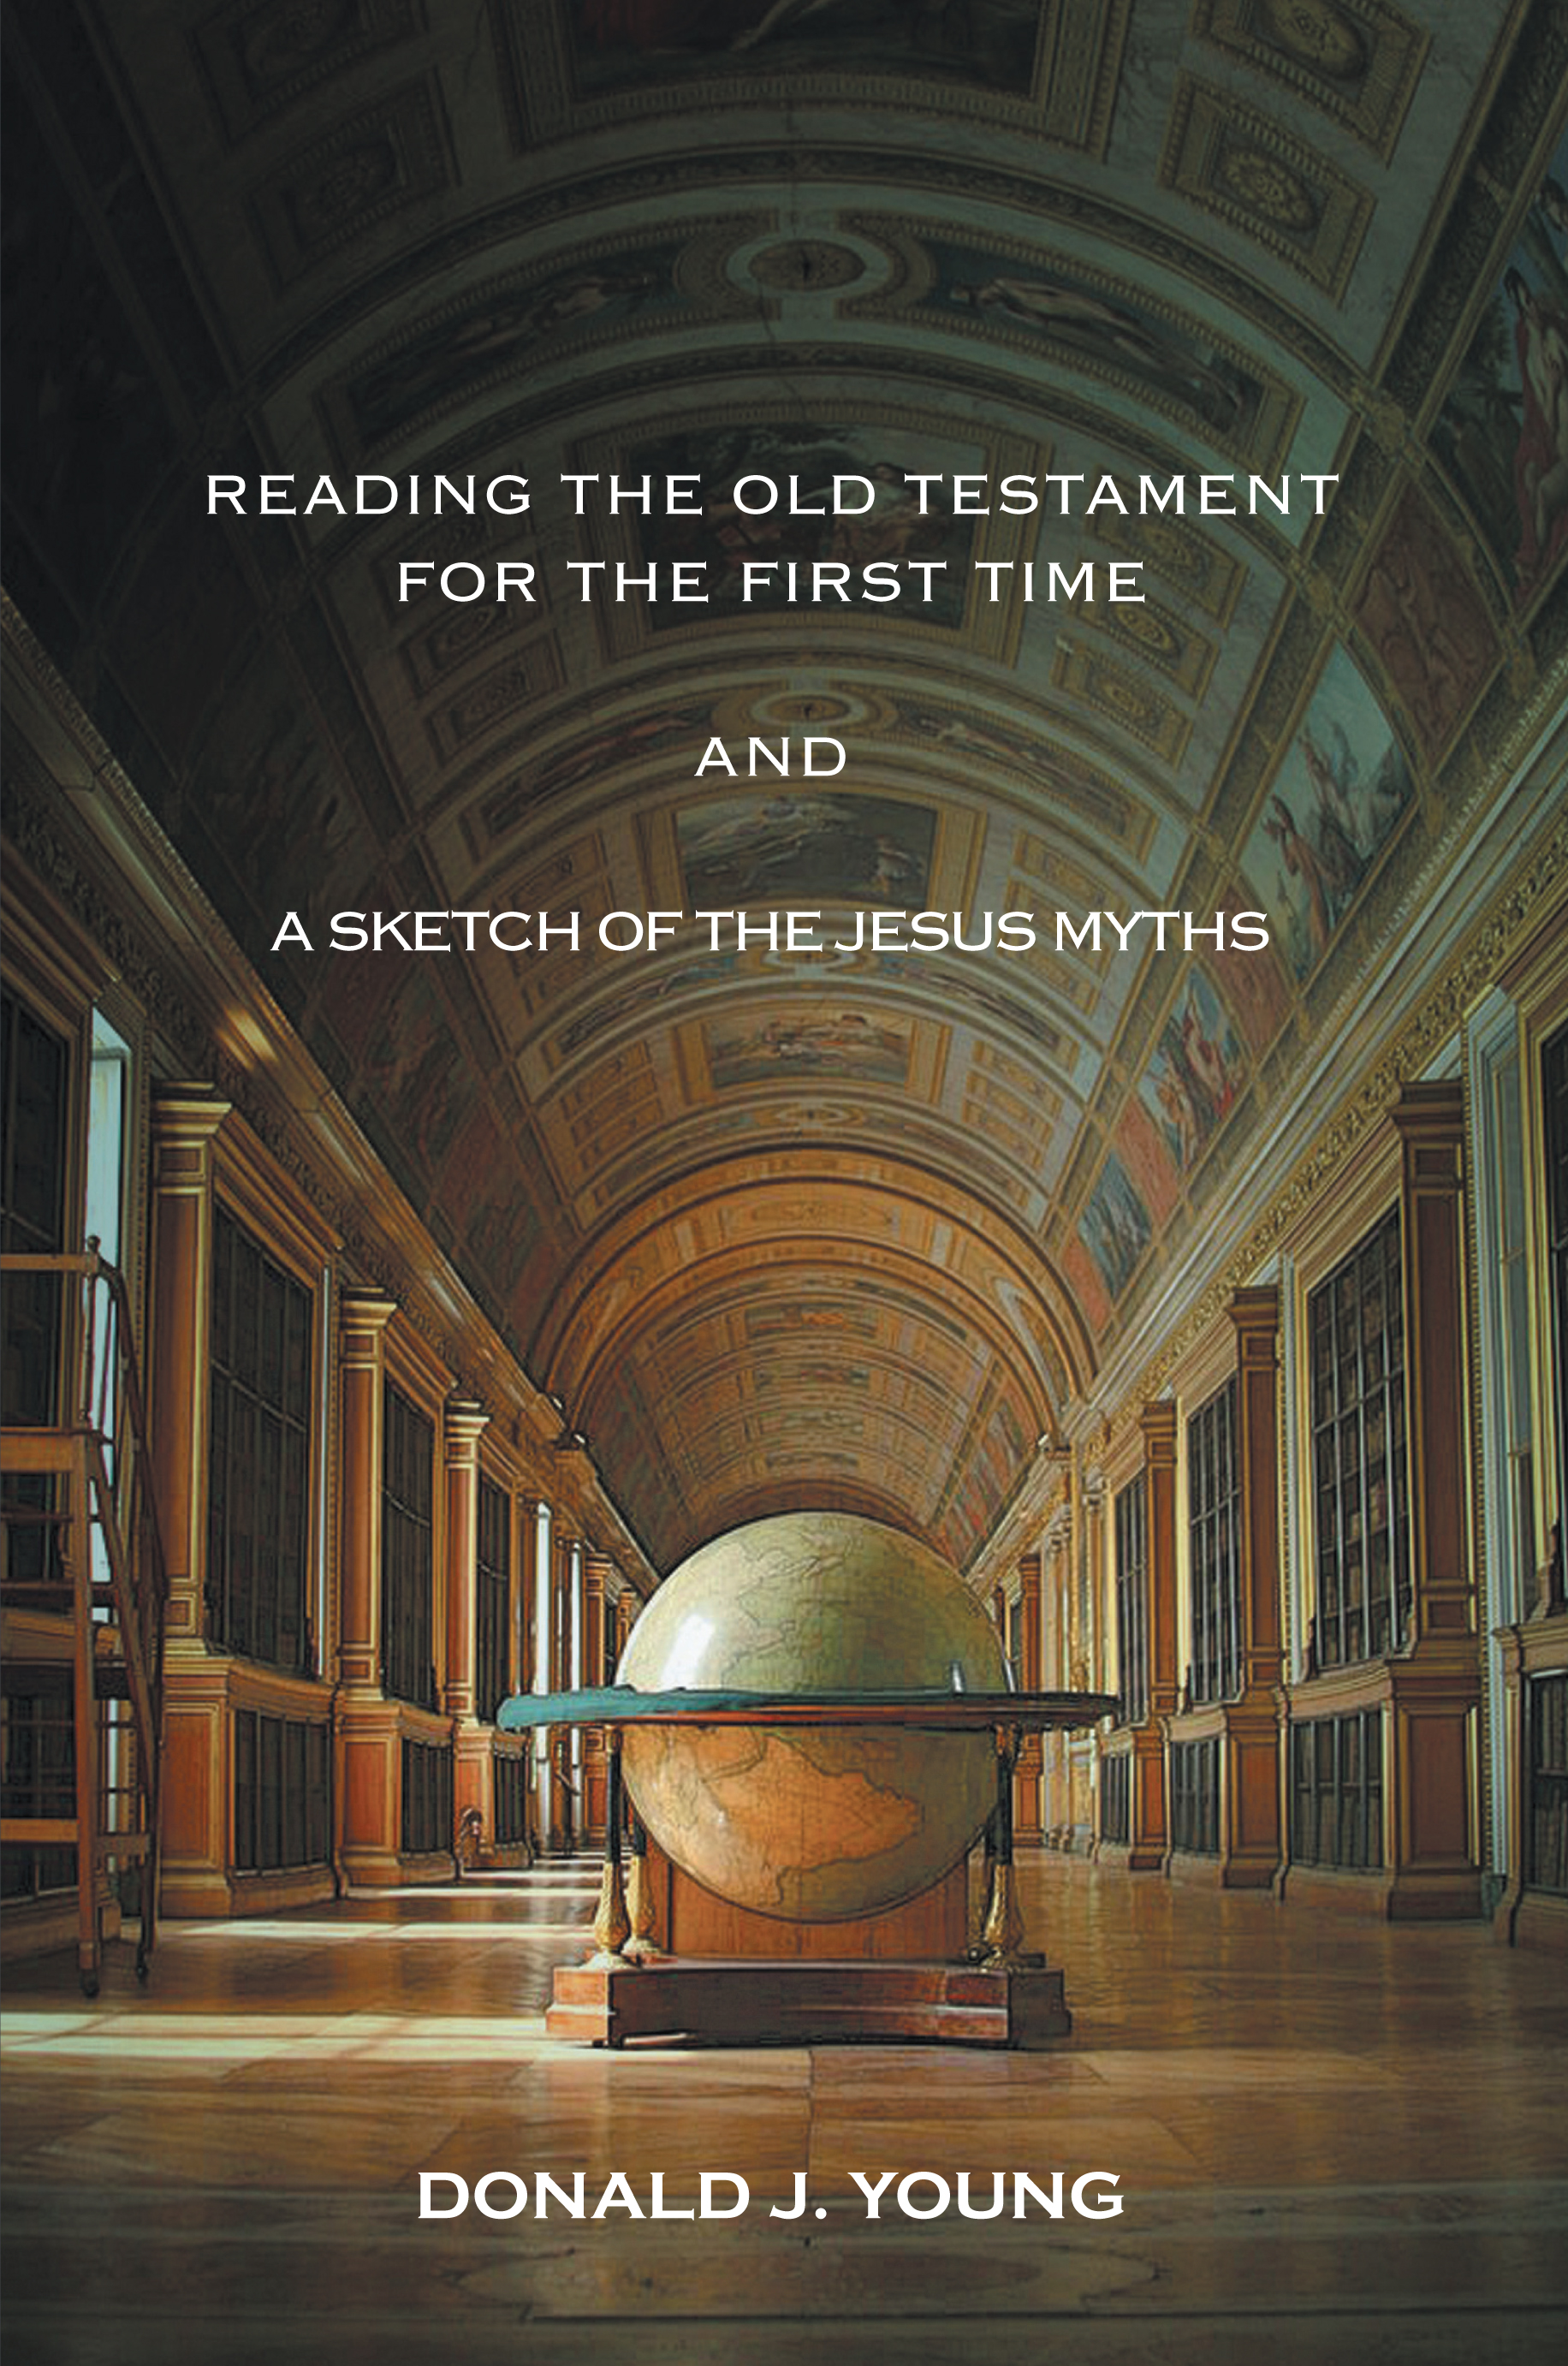 Reading The Old Testament For The First Time And A Sketch Of The Jesus Myths